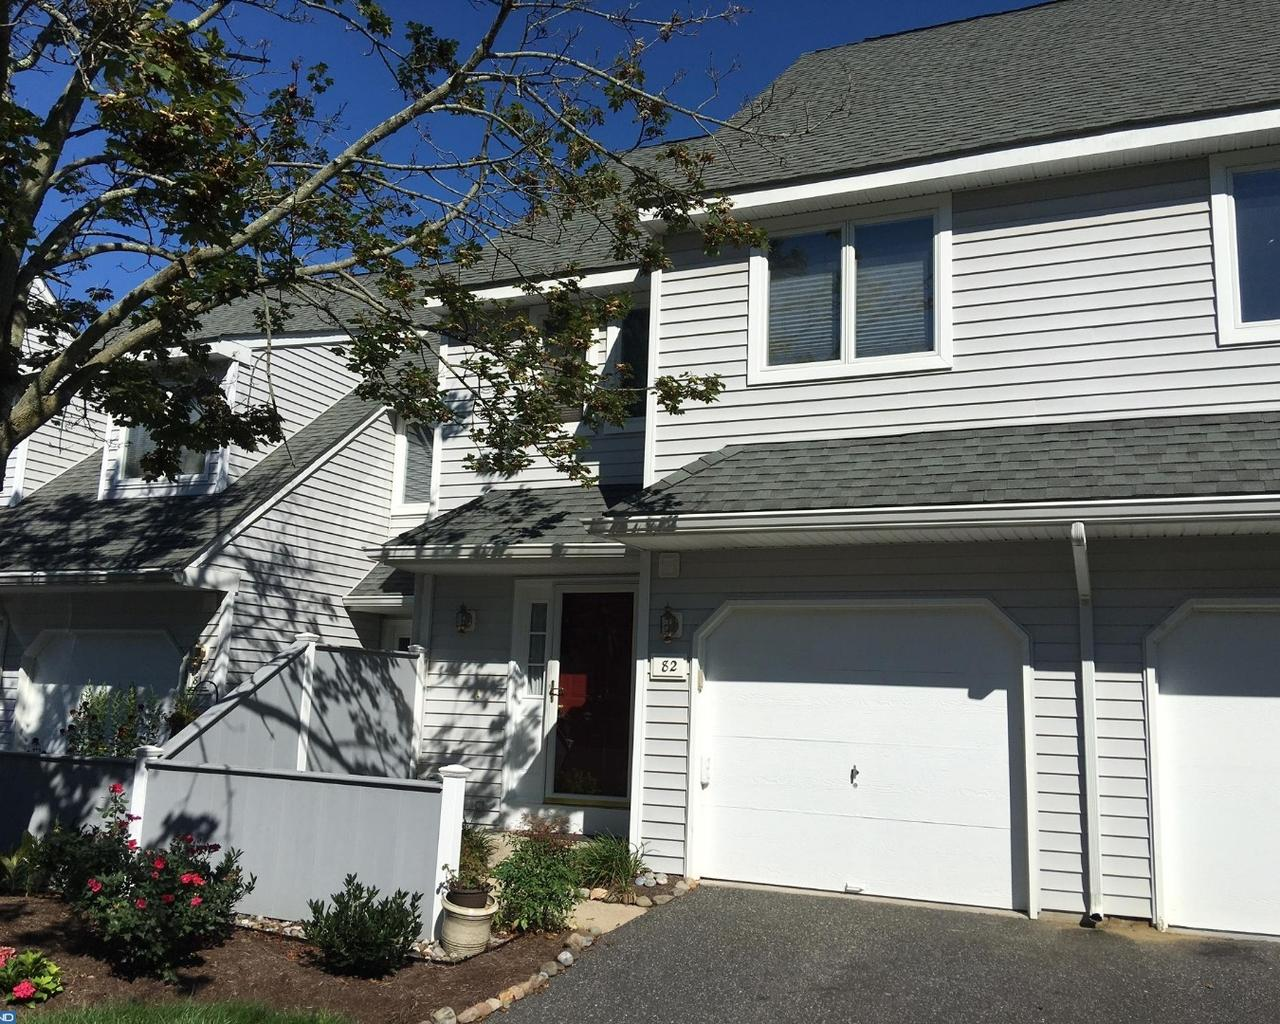 Property for sale at 82 E THOMAS CT, Kennett Square,  PA 19348